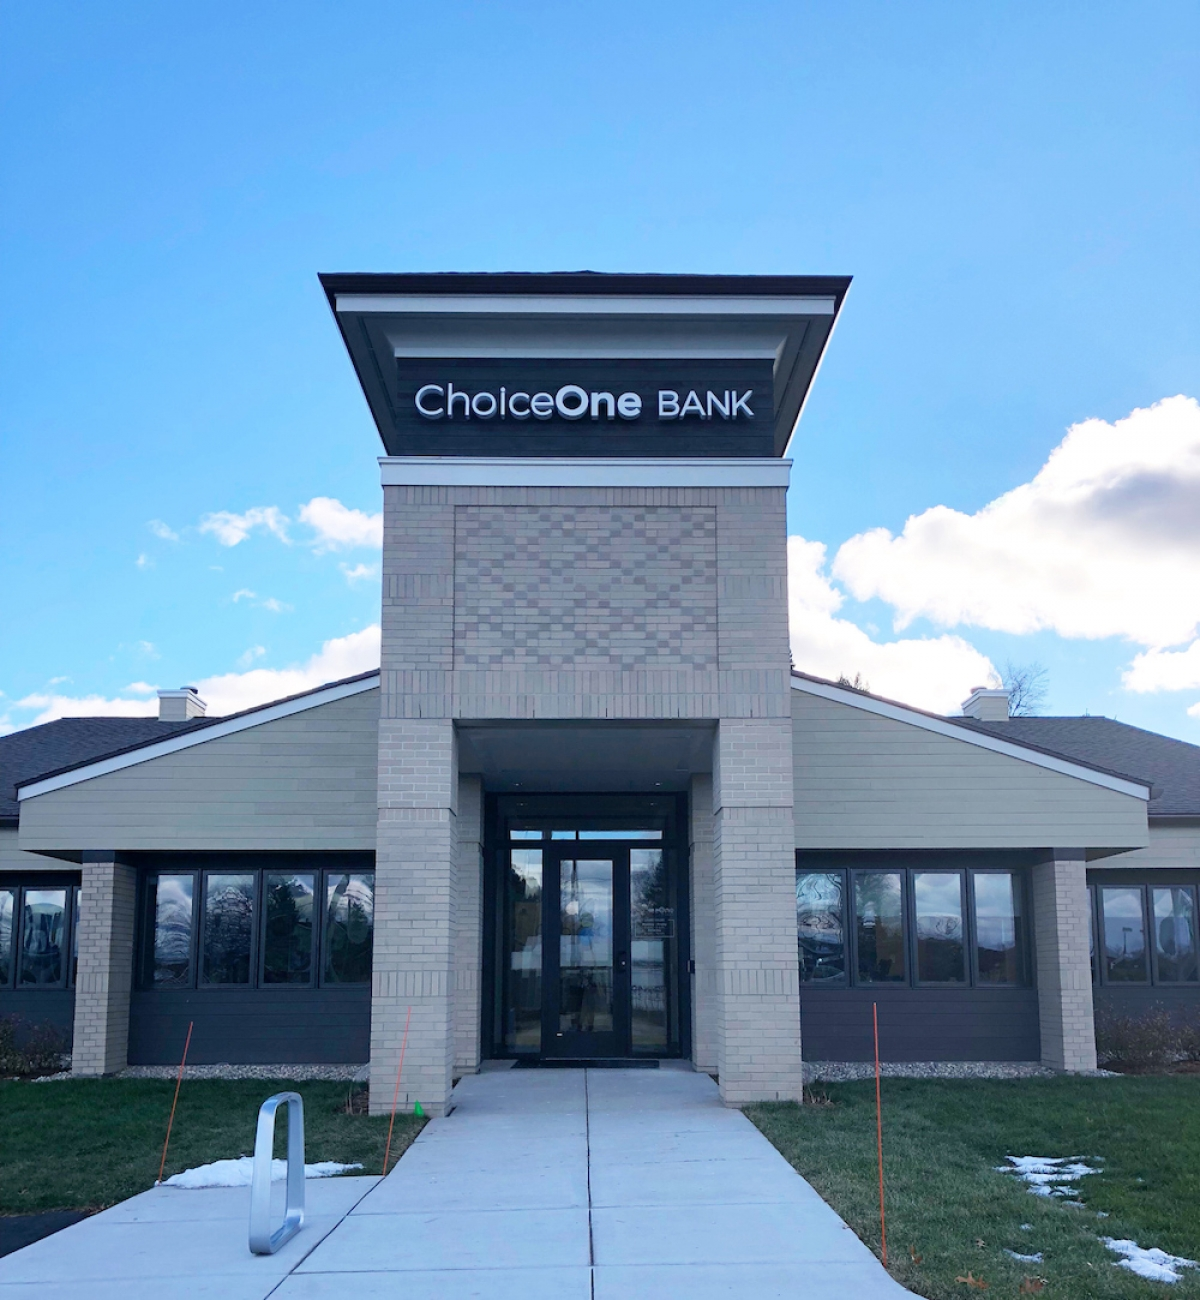 ChoiceOne Bank opened a branch in Rockford in the fourth quarter of 2018.